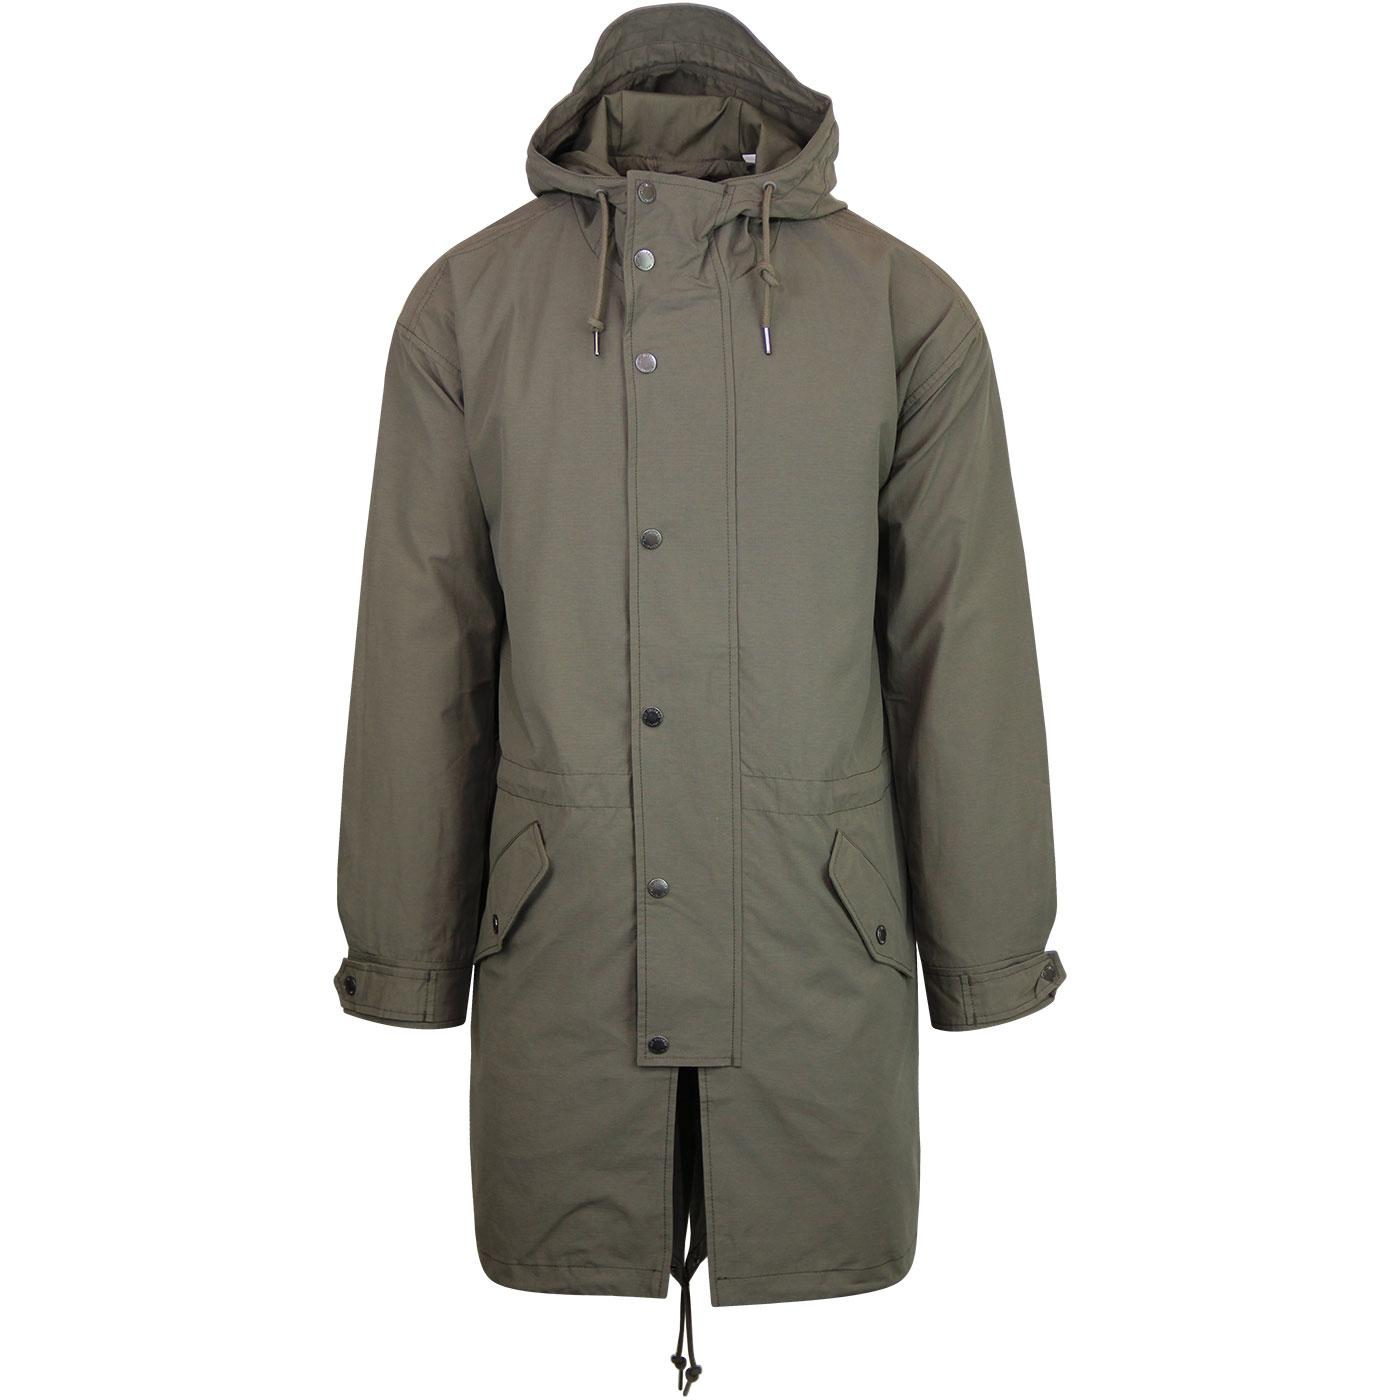 Ben Sherman Mens Short Parka Jacket